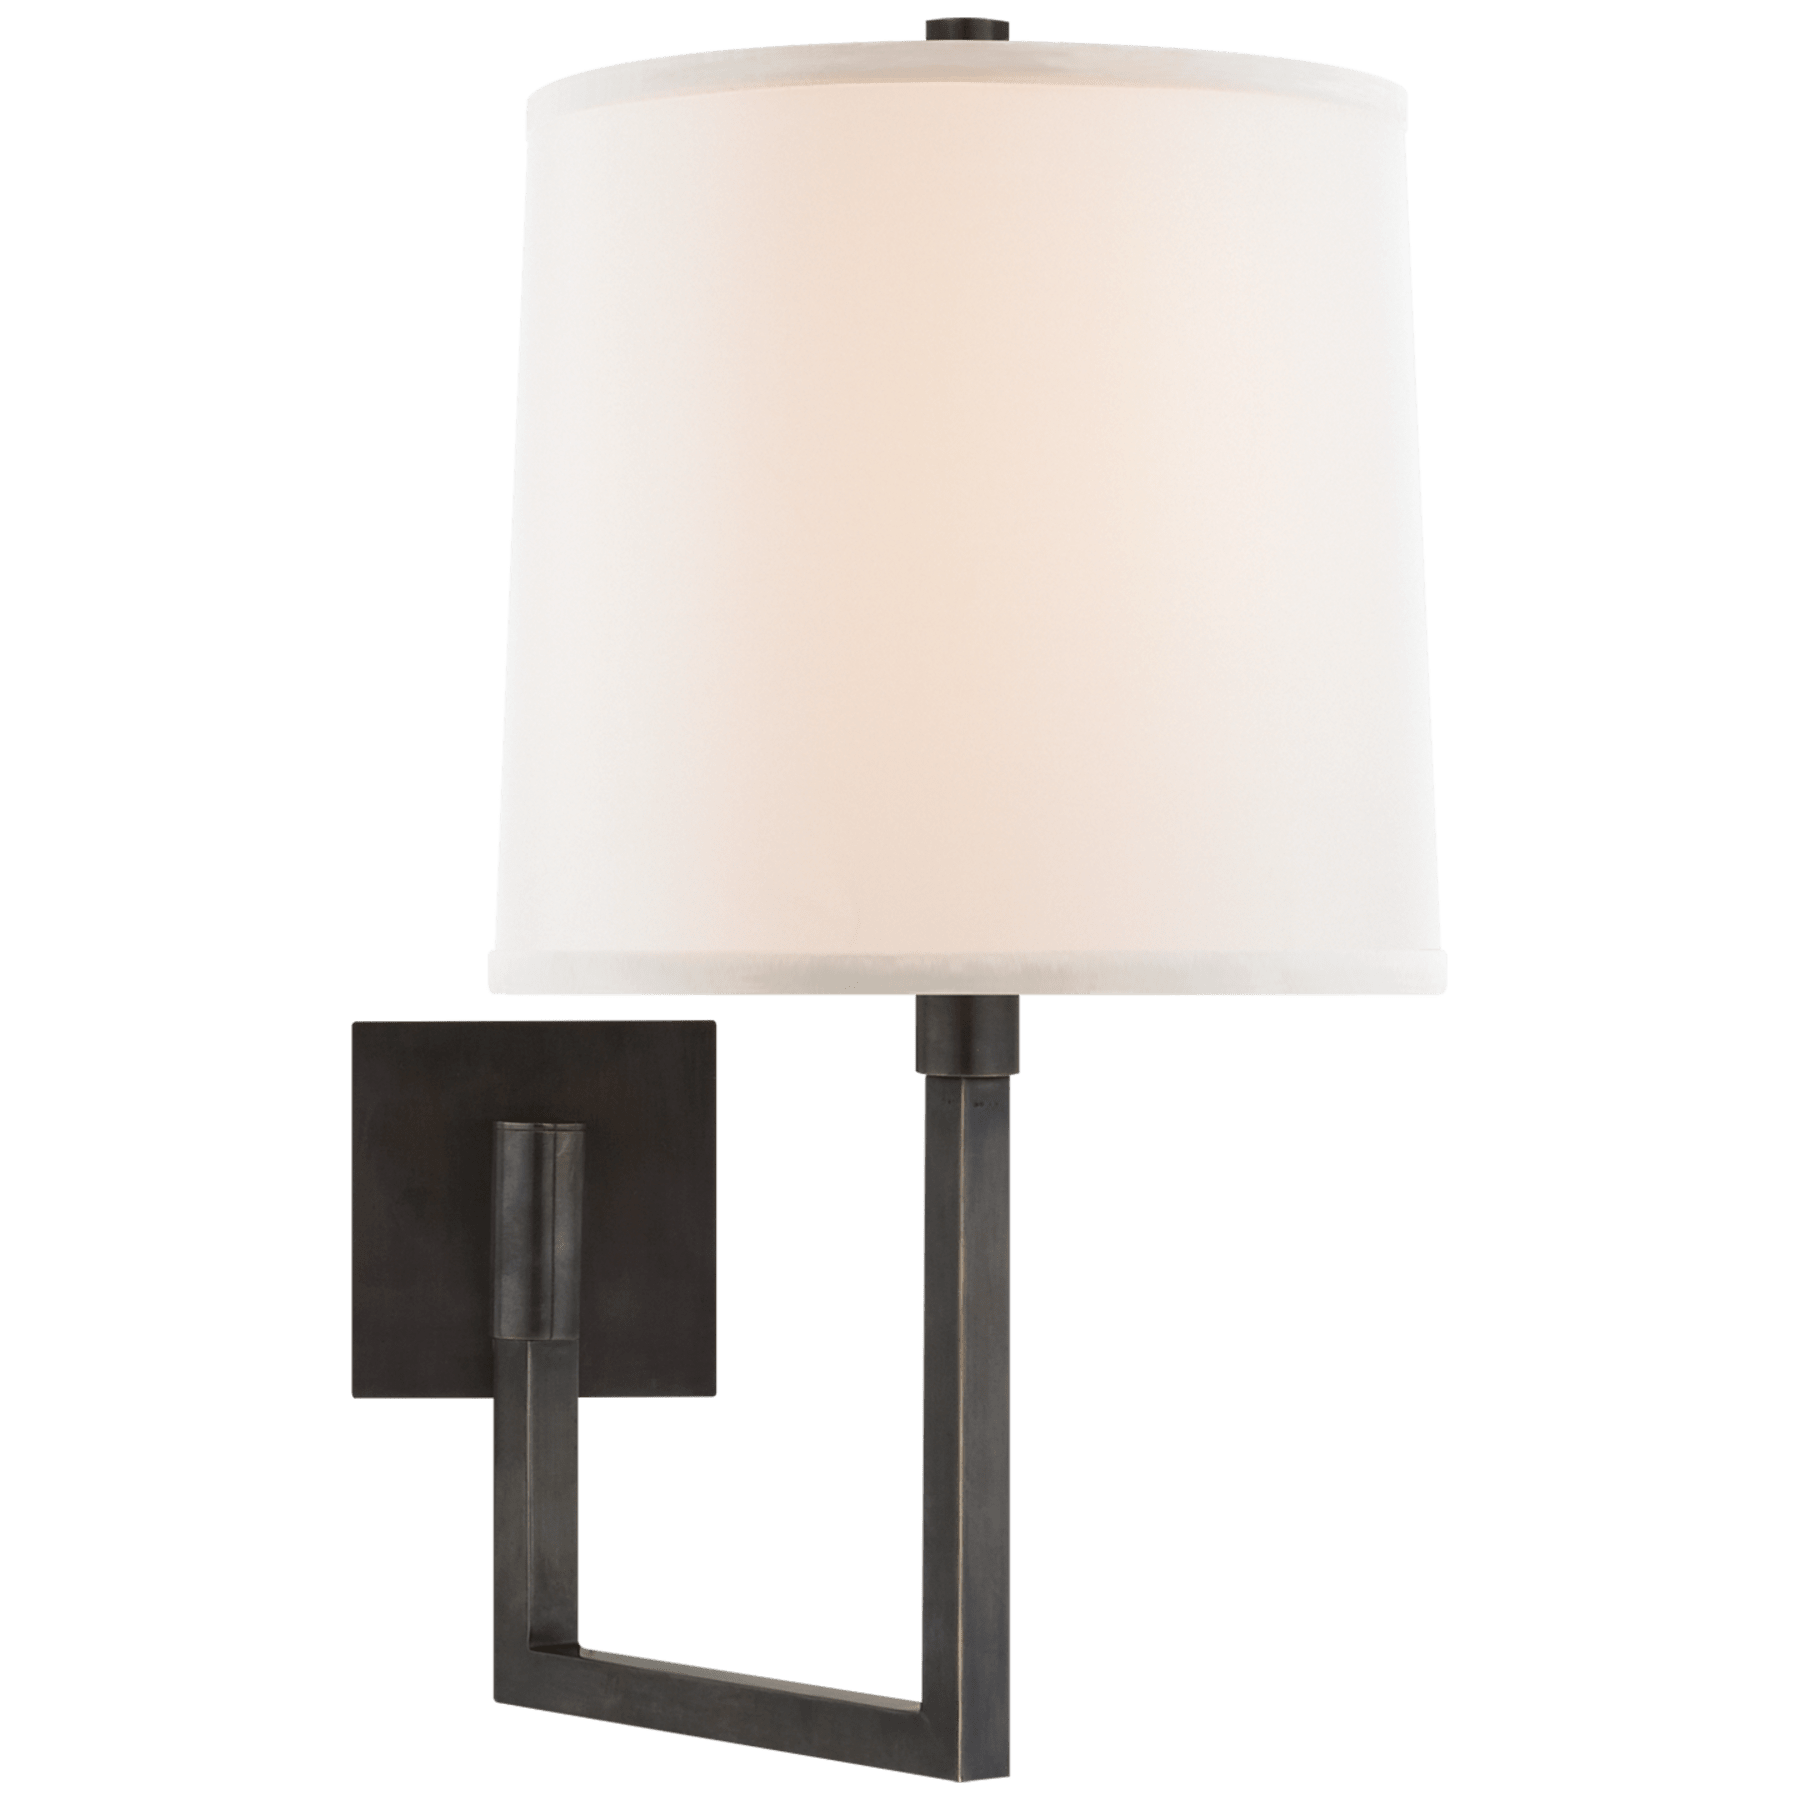 Aspect Large Articulating Sconce Barbara Barry Circa Lighting